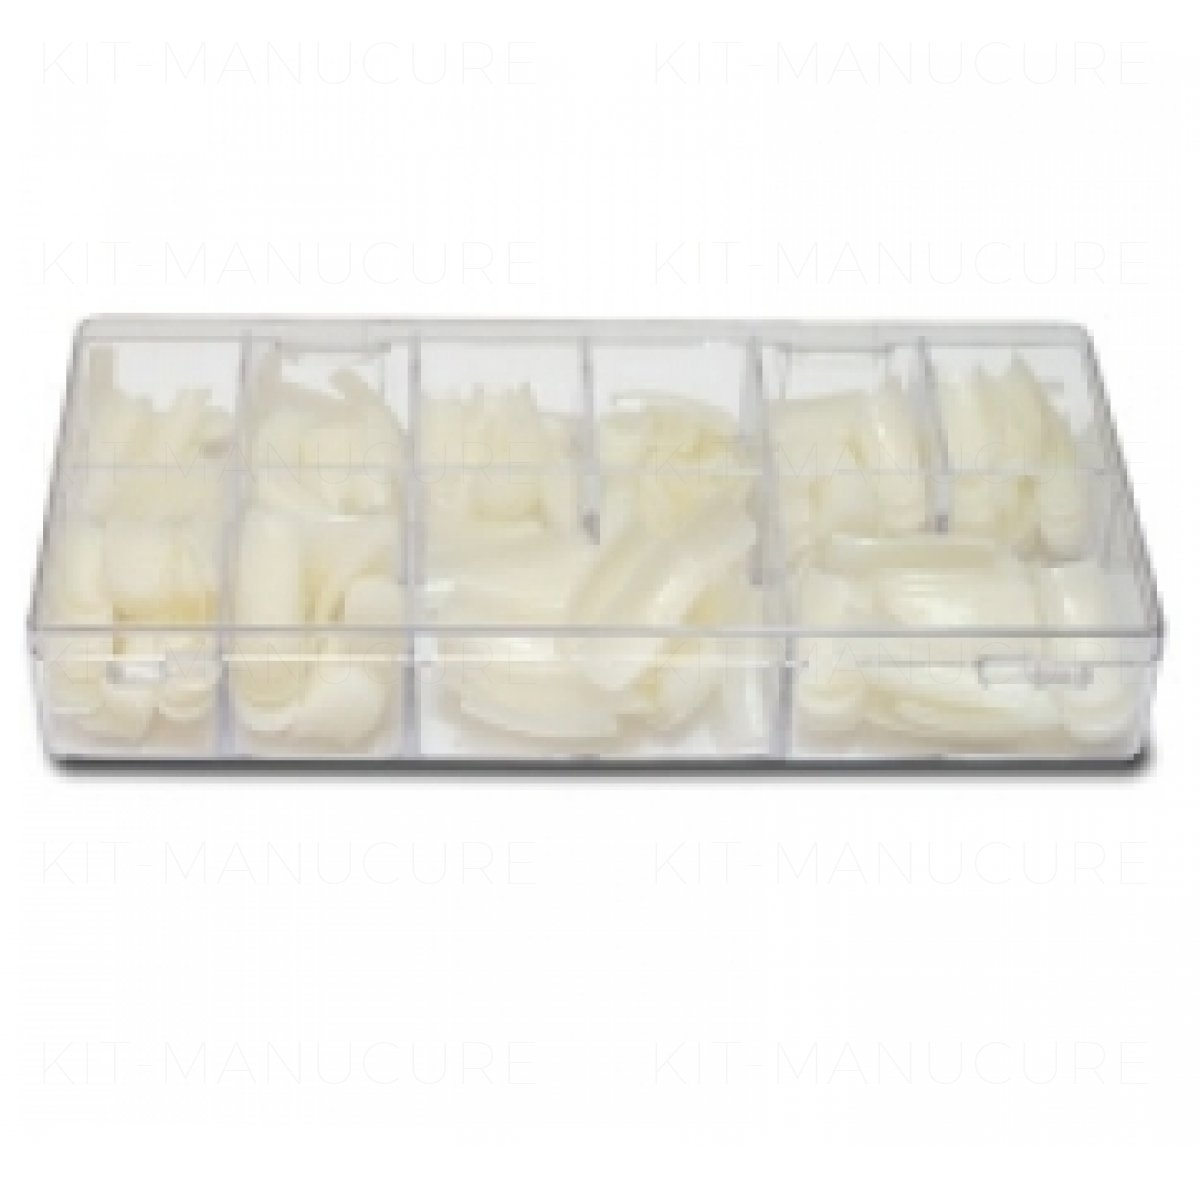 https://www.kit-manucure.com/629-thickbox_default/boîte-de-500-capsules-naturelles-ou-tips.jpg